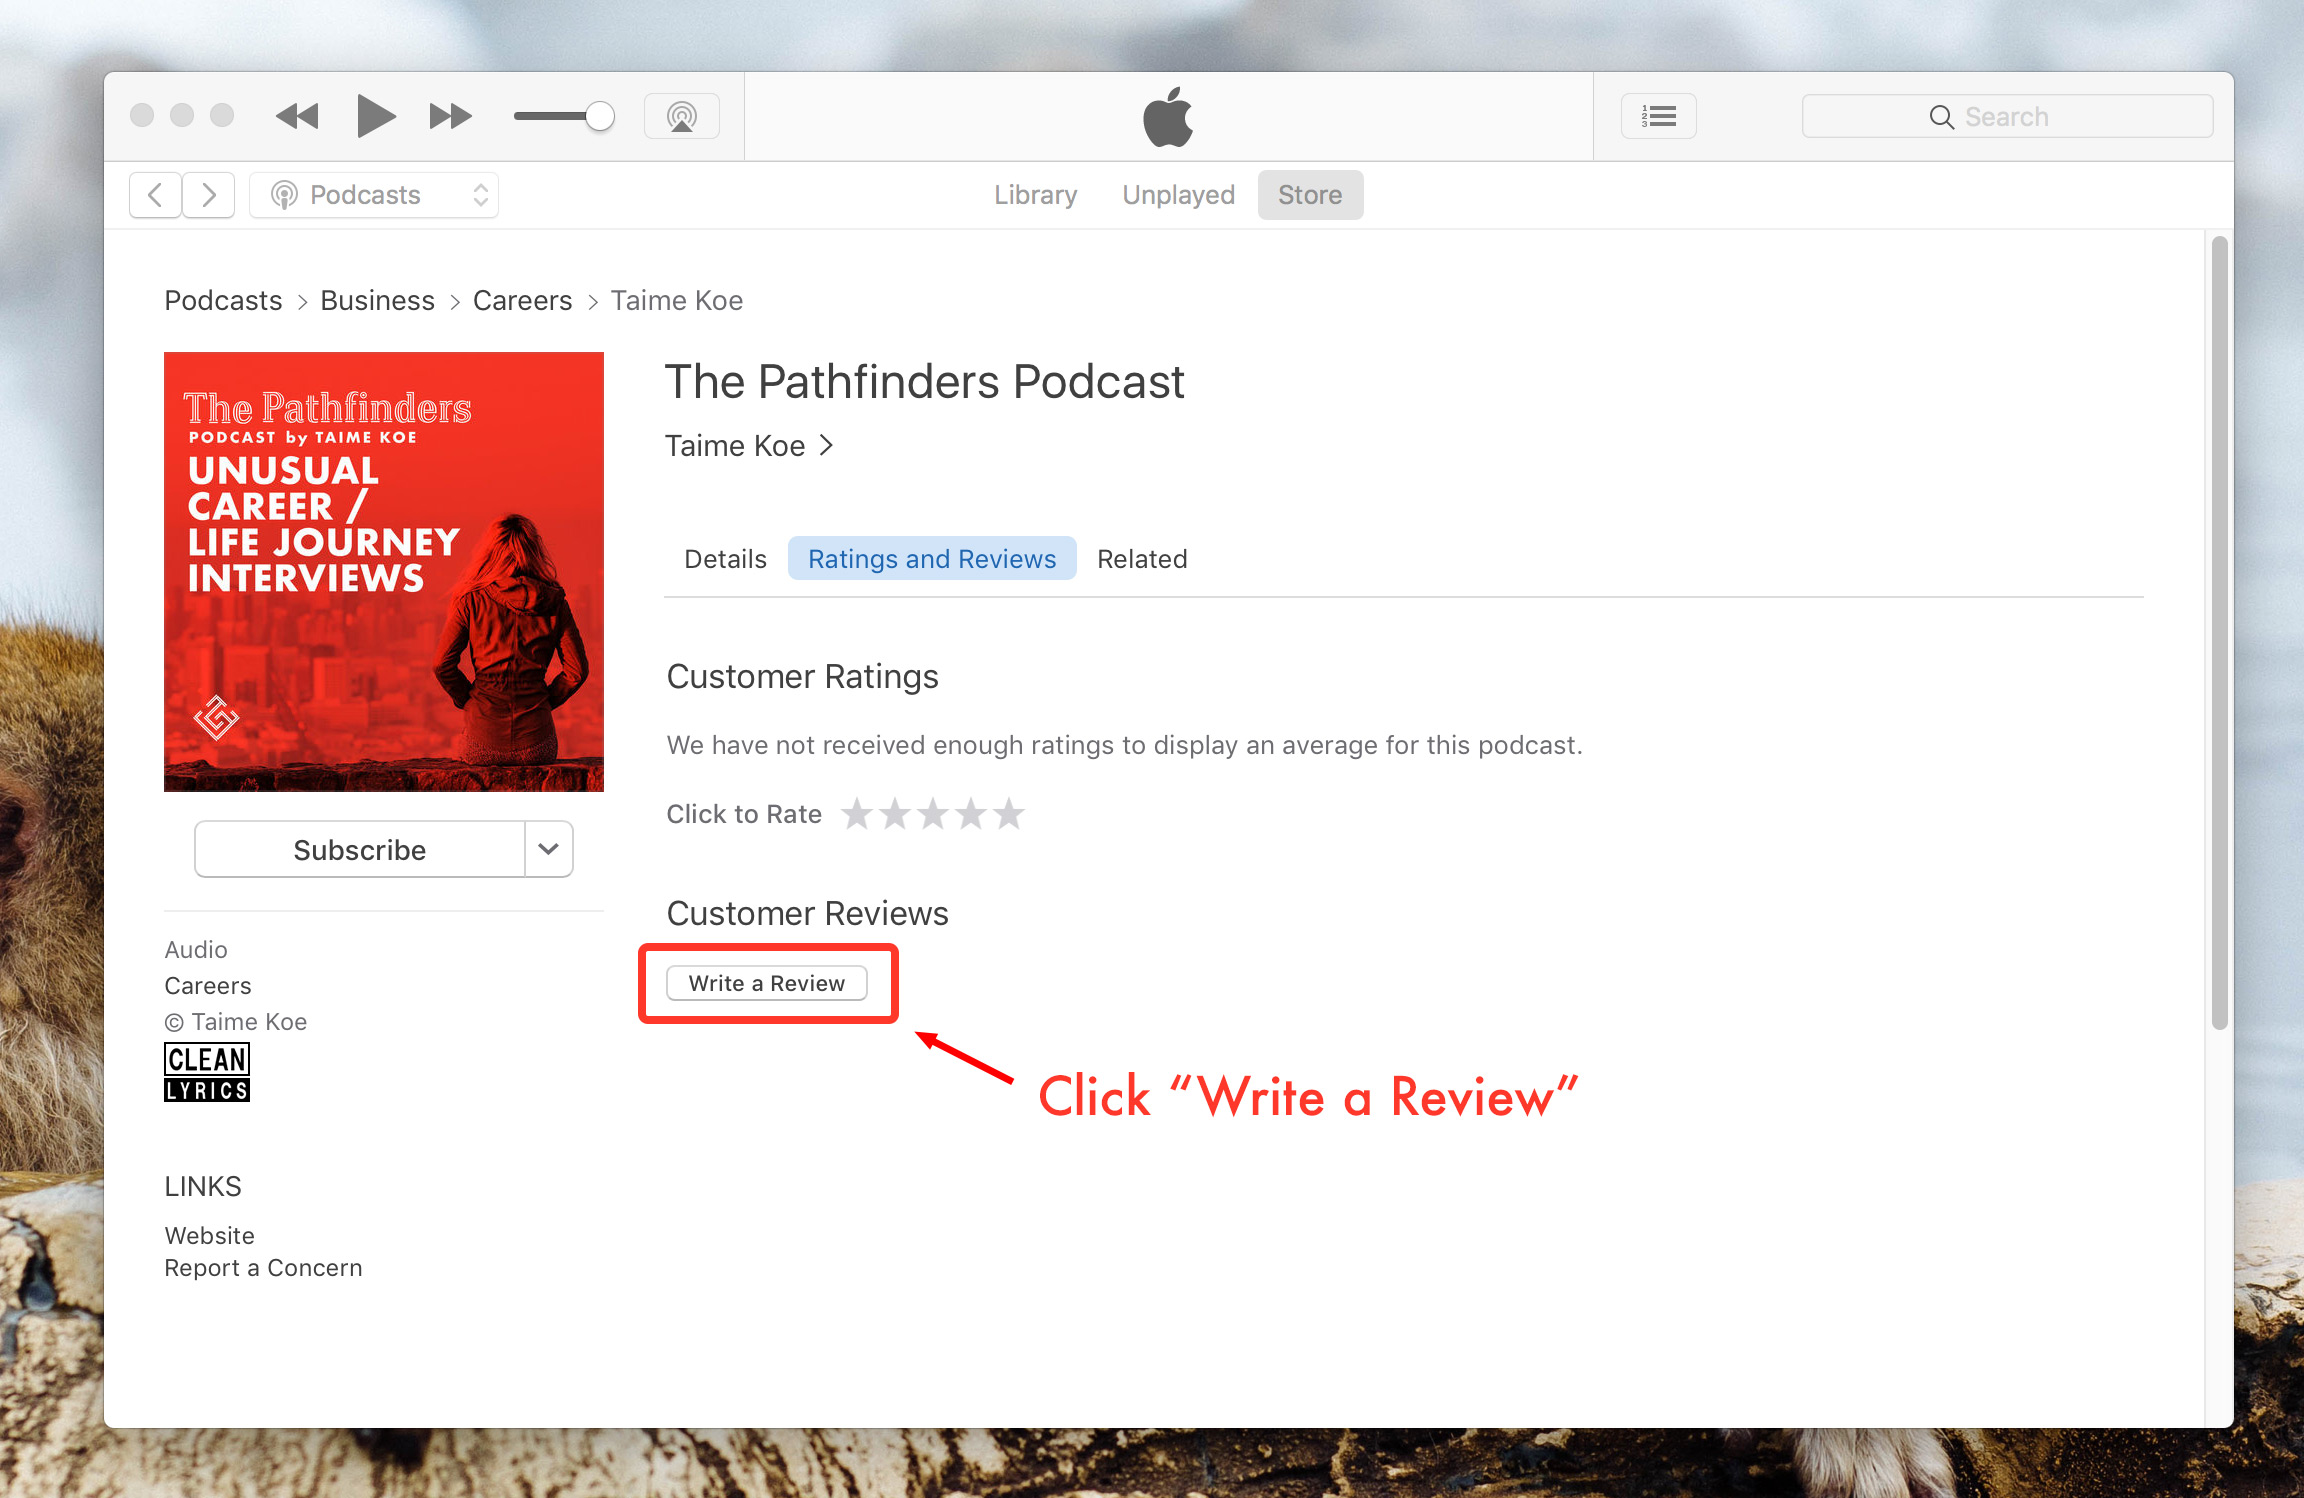 review-podcast-4.jpg